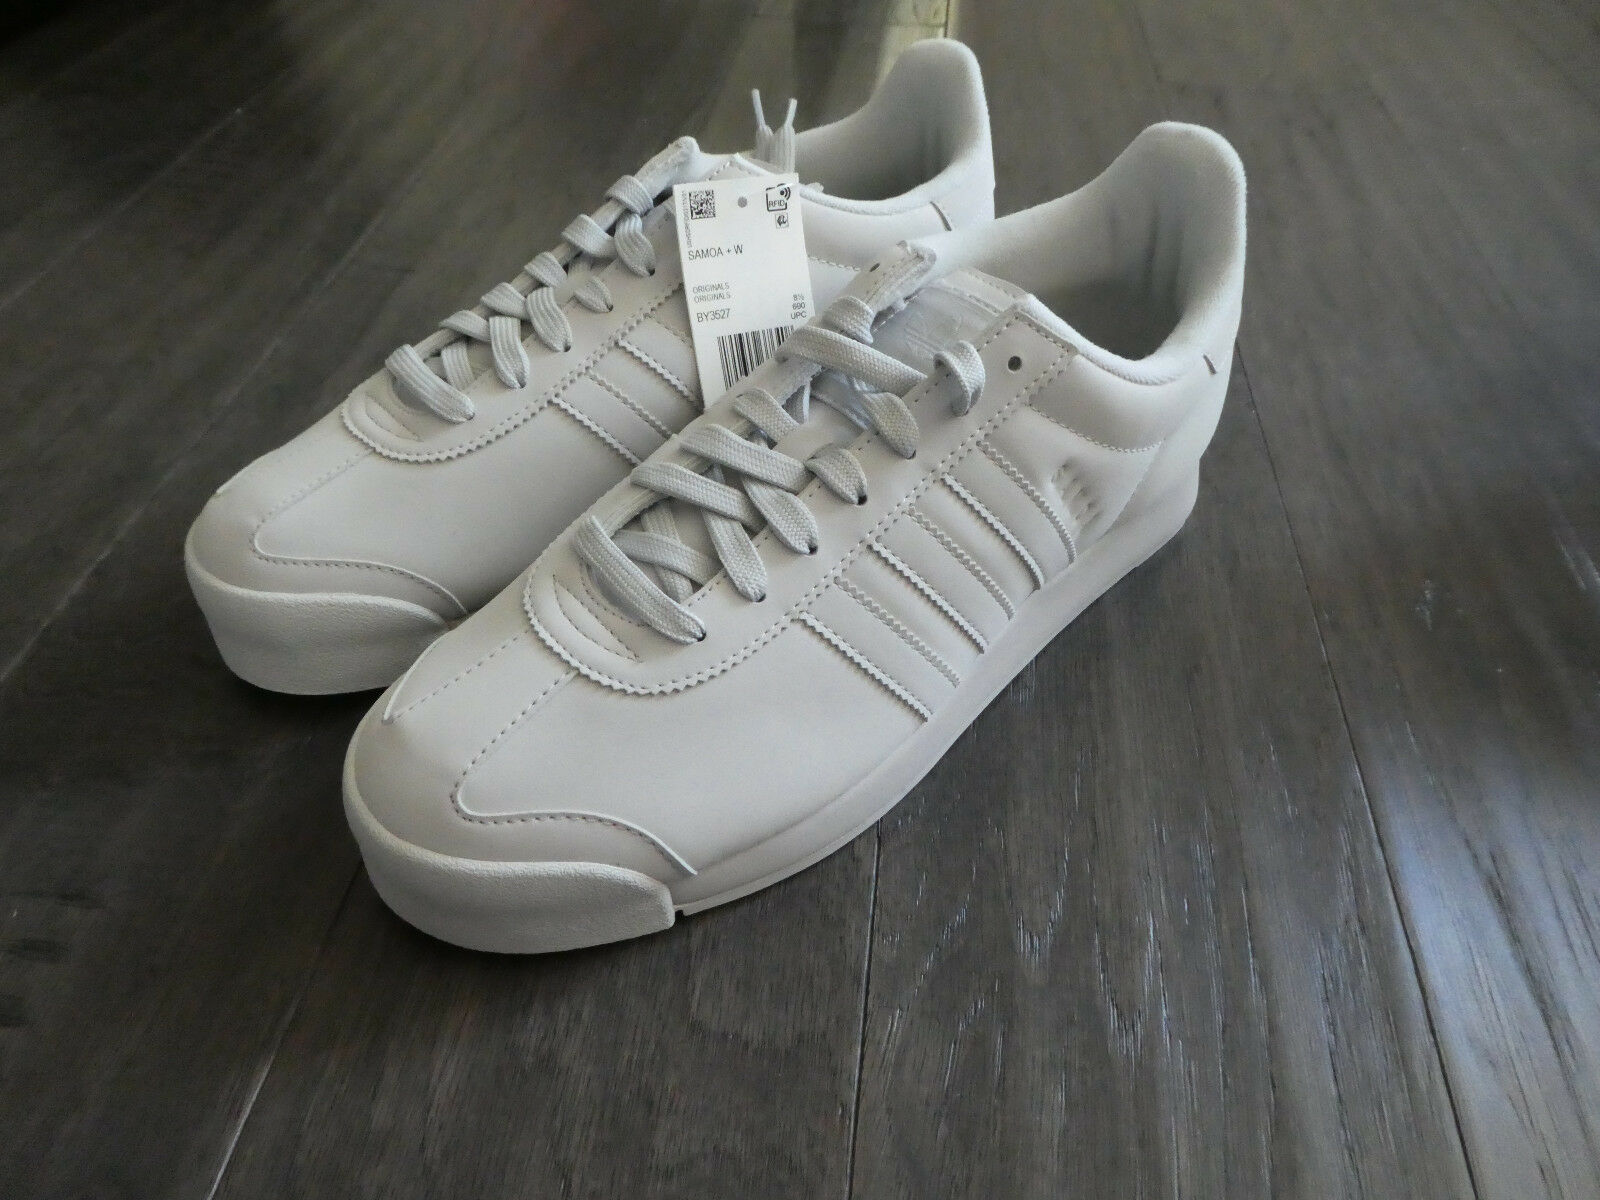 Adidas Women's Samoa + W shoes sneakers new BY3527 Grey Greone